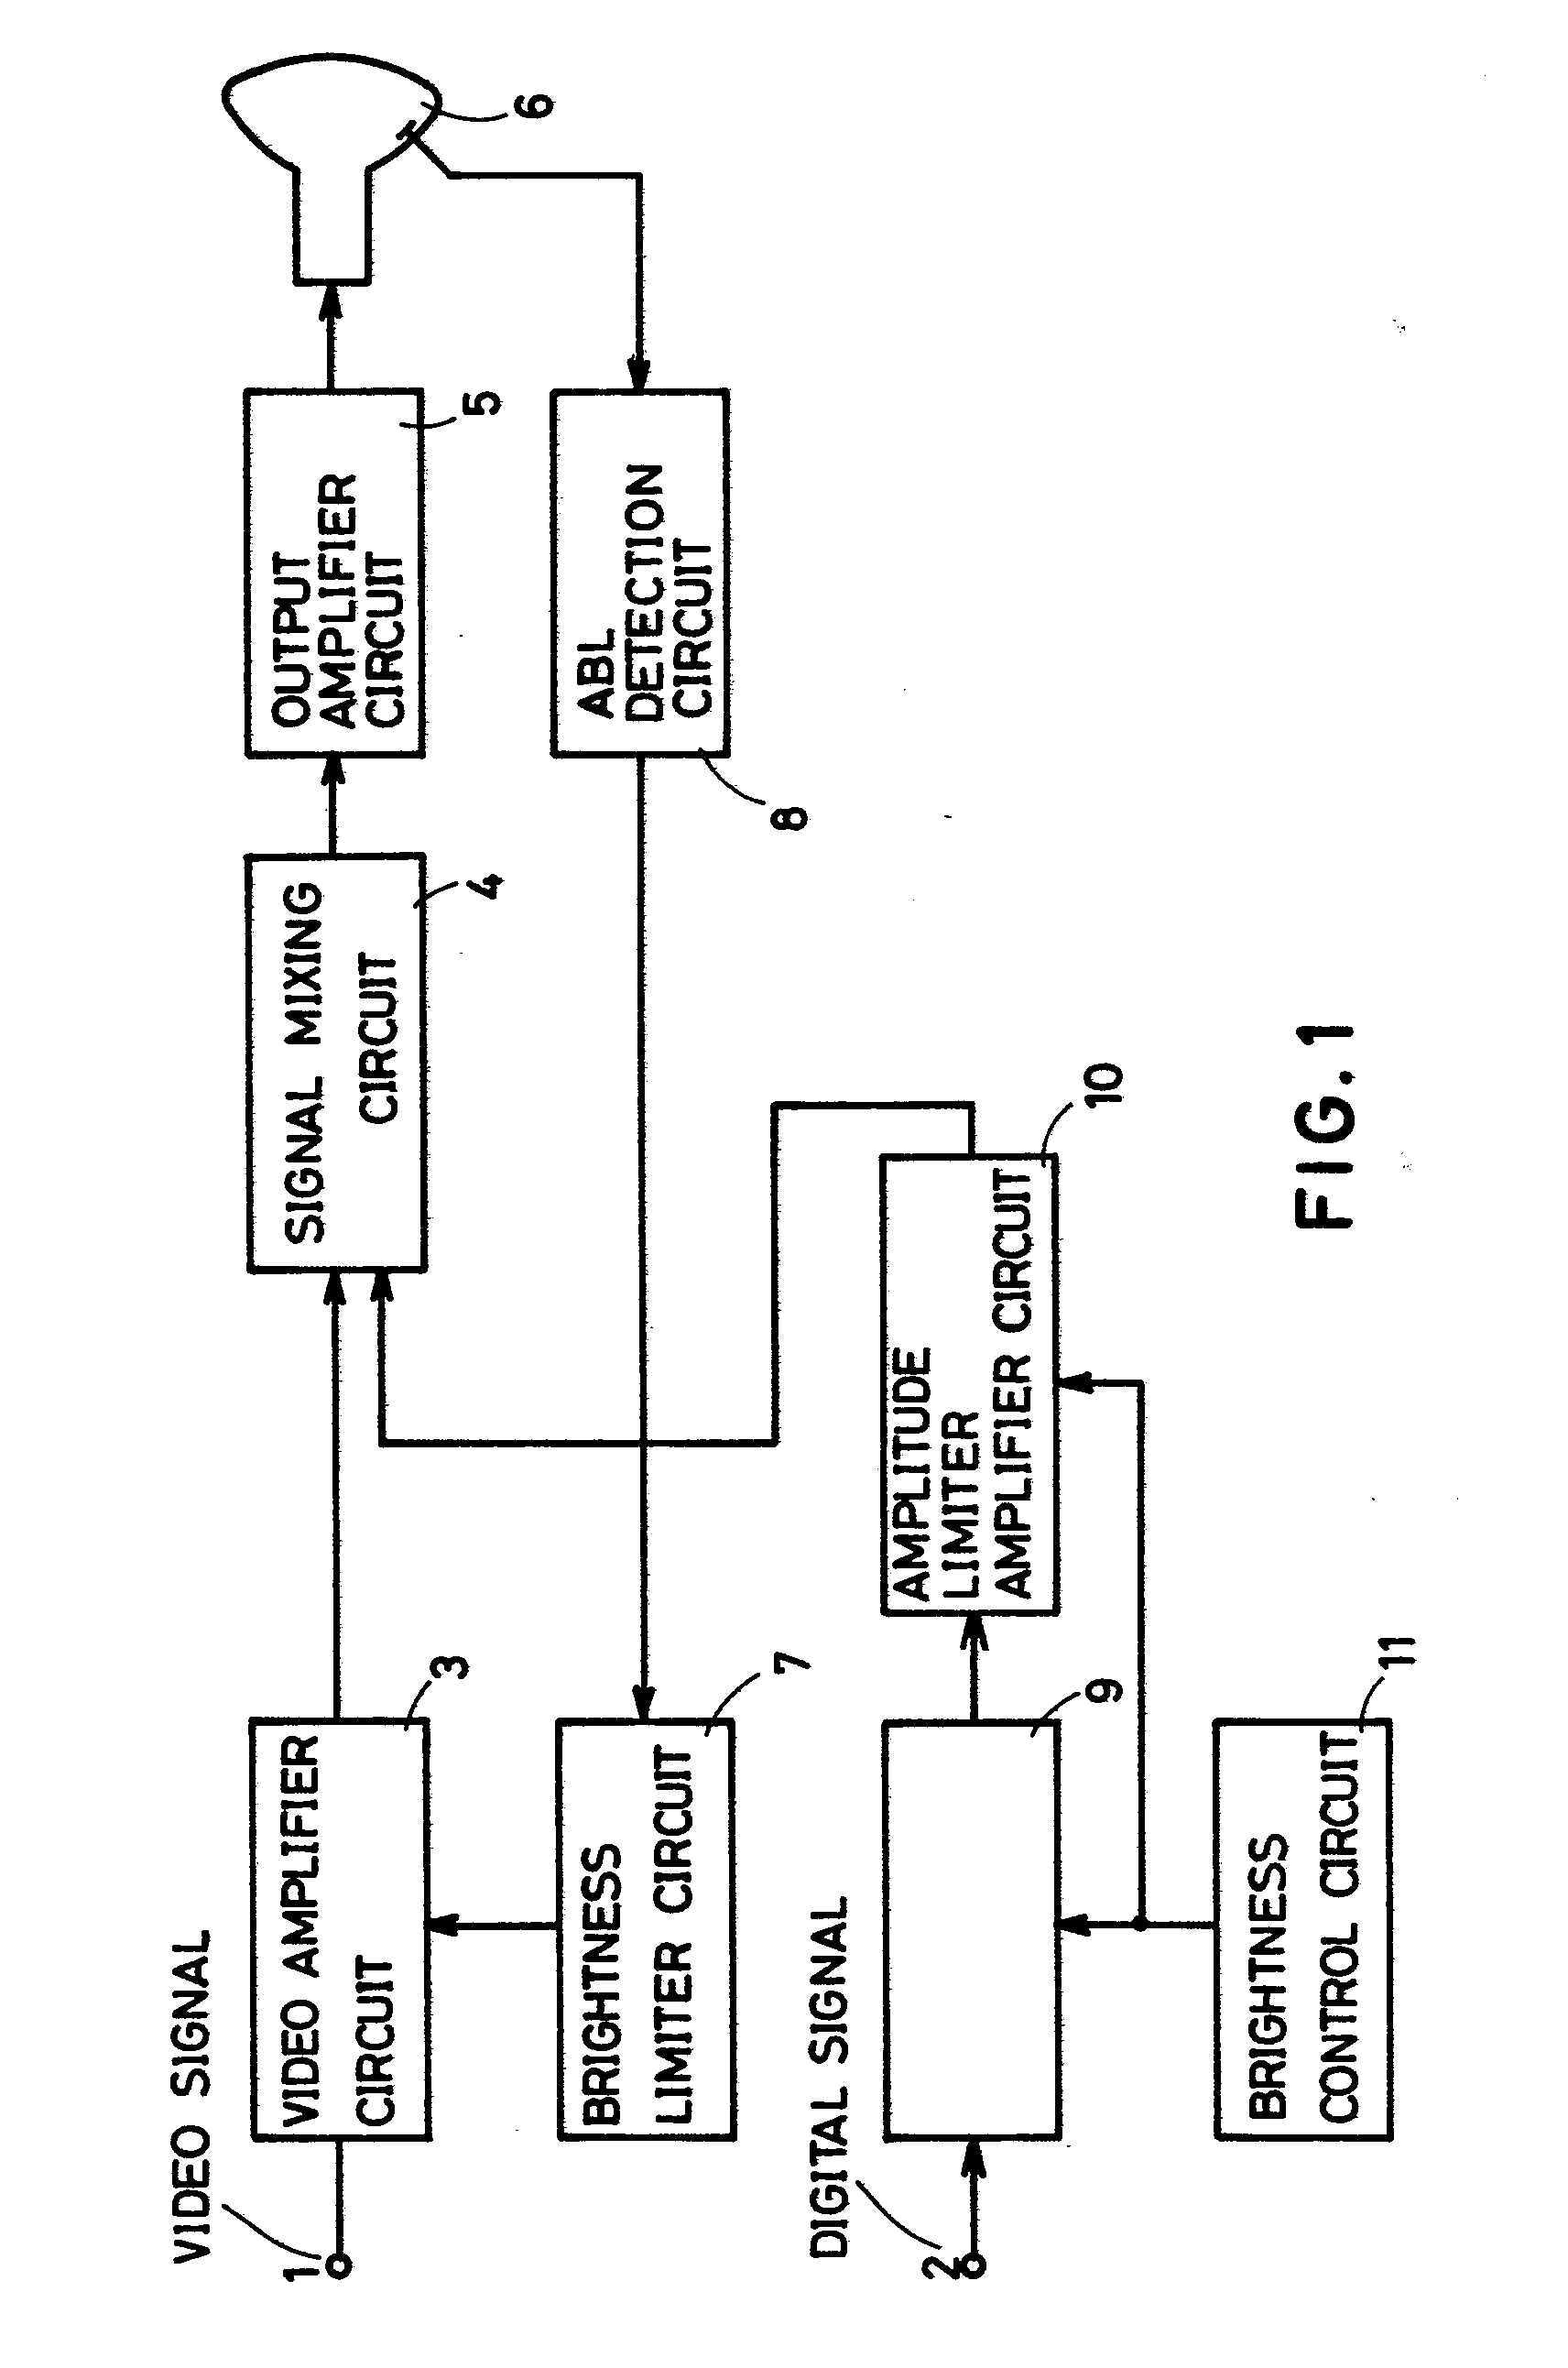 Video Display Apparatus Having An Automatic Brightness Limiter Tv Signal Amplifier 470mhz860mhz Amplifiercircuit Circuit Drawing